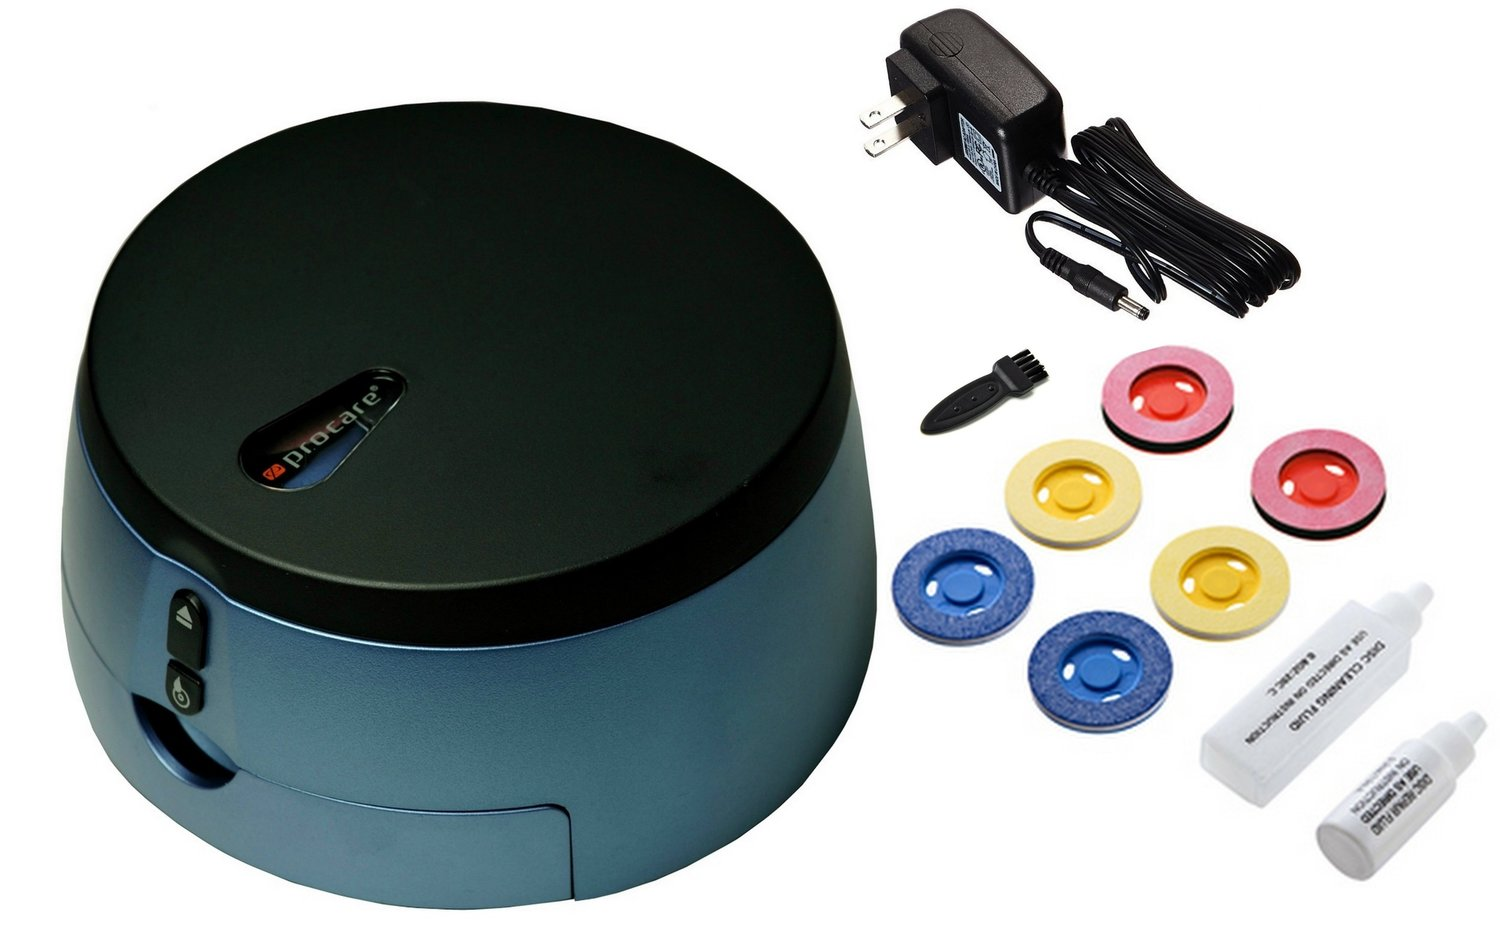 - Package contents1 Disc Repairing and Cleaning machine1 Repair fluid 10cc. 1 Cleaning fluid 20cc. 2 Cleaning pads - blue2 Buffering pads - pink2 Repairing pads - yellow1 Mini brush1 Power adapter1 Instruction manual